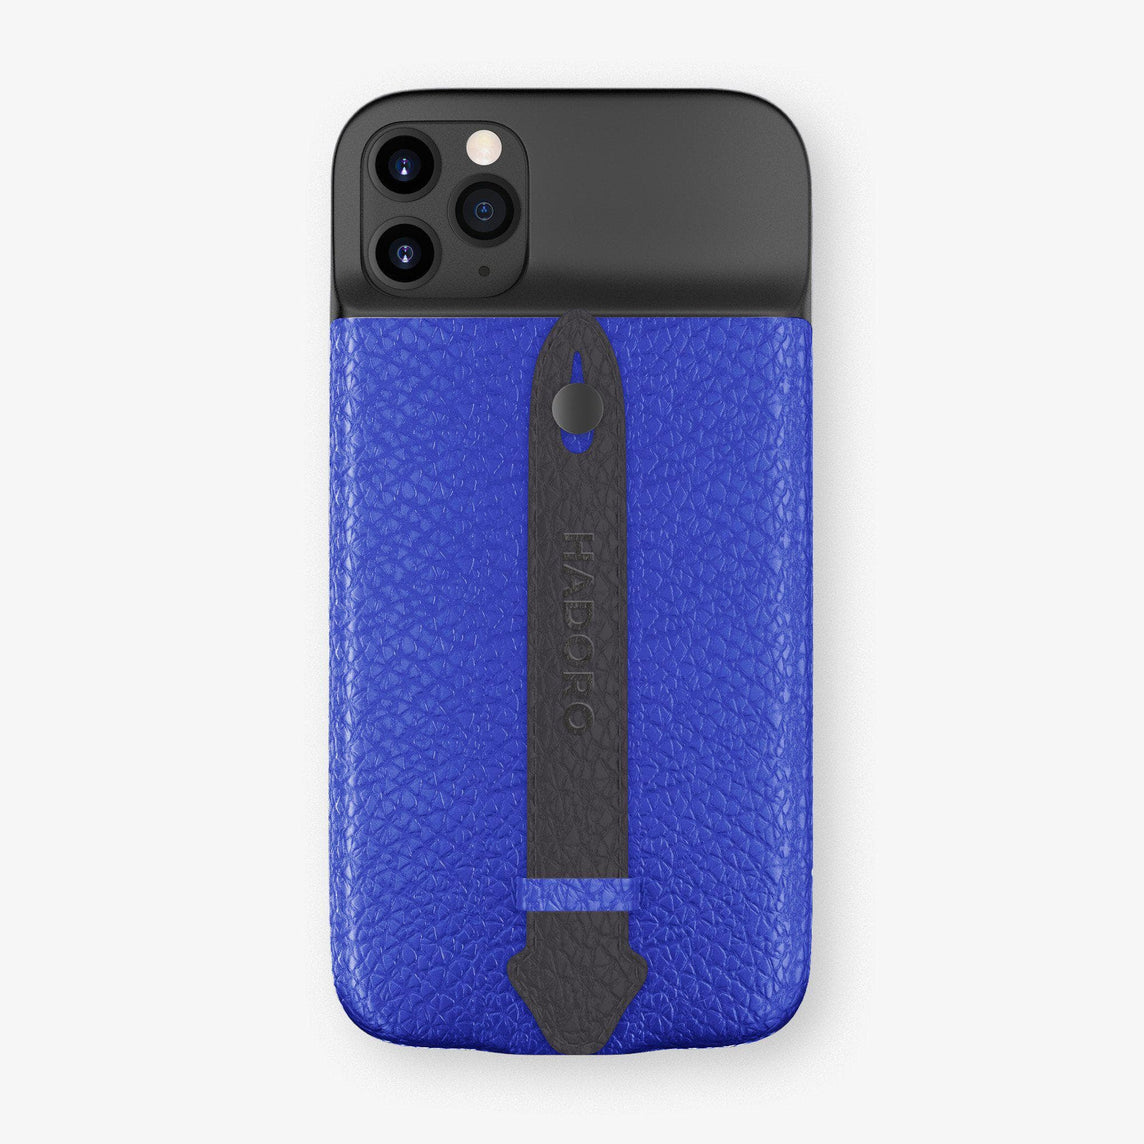 Calfskin Battery Finger Case for iPhone 11 Pro Max | Peony Blue/Anthracite - Black without-personalization